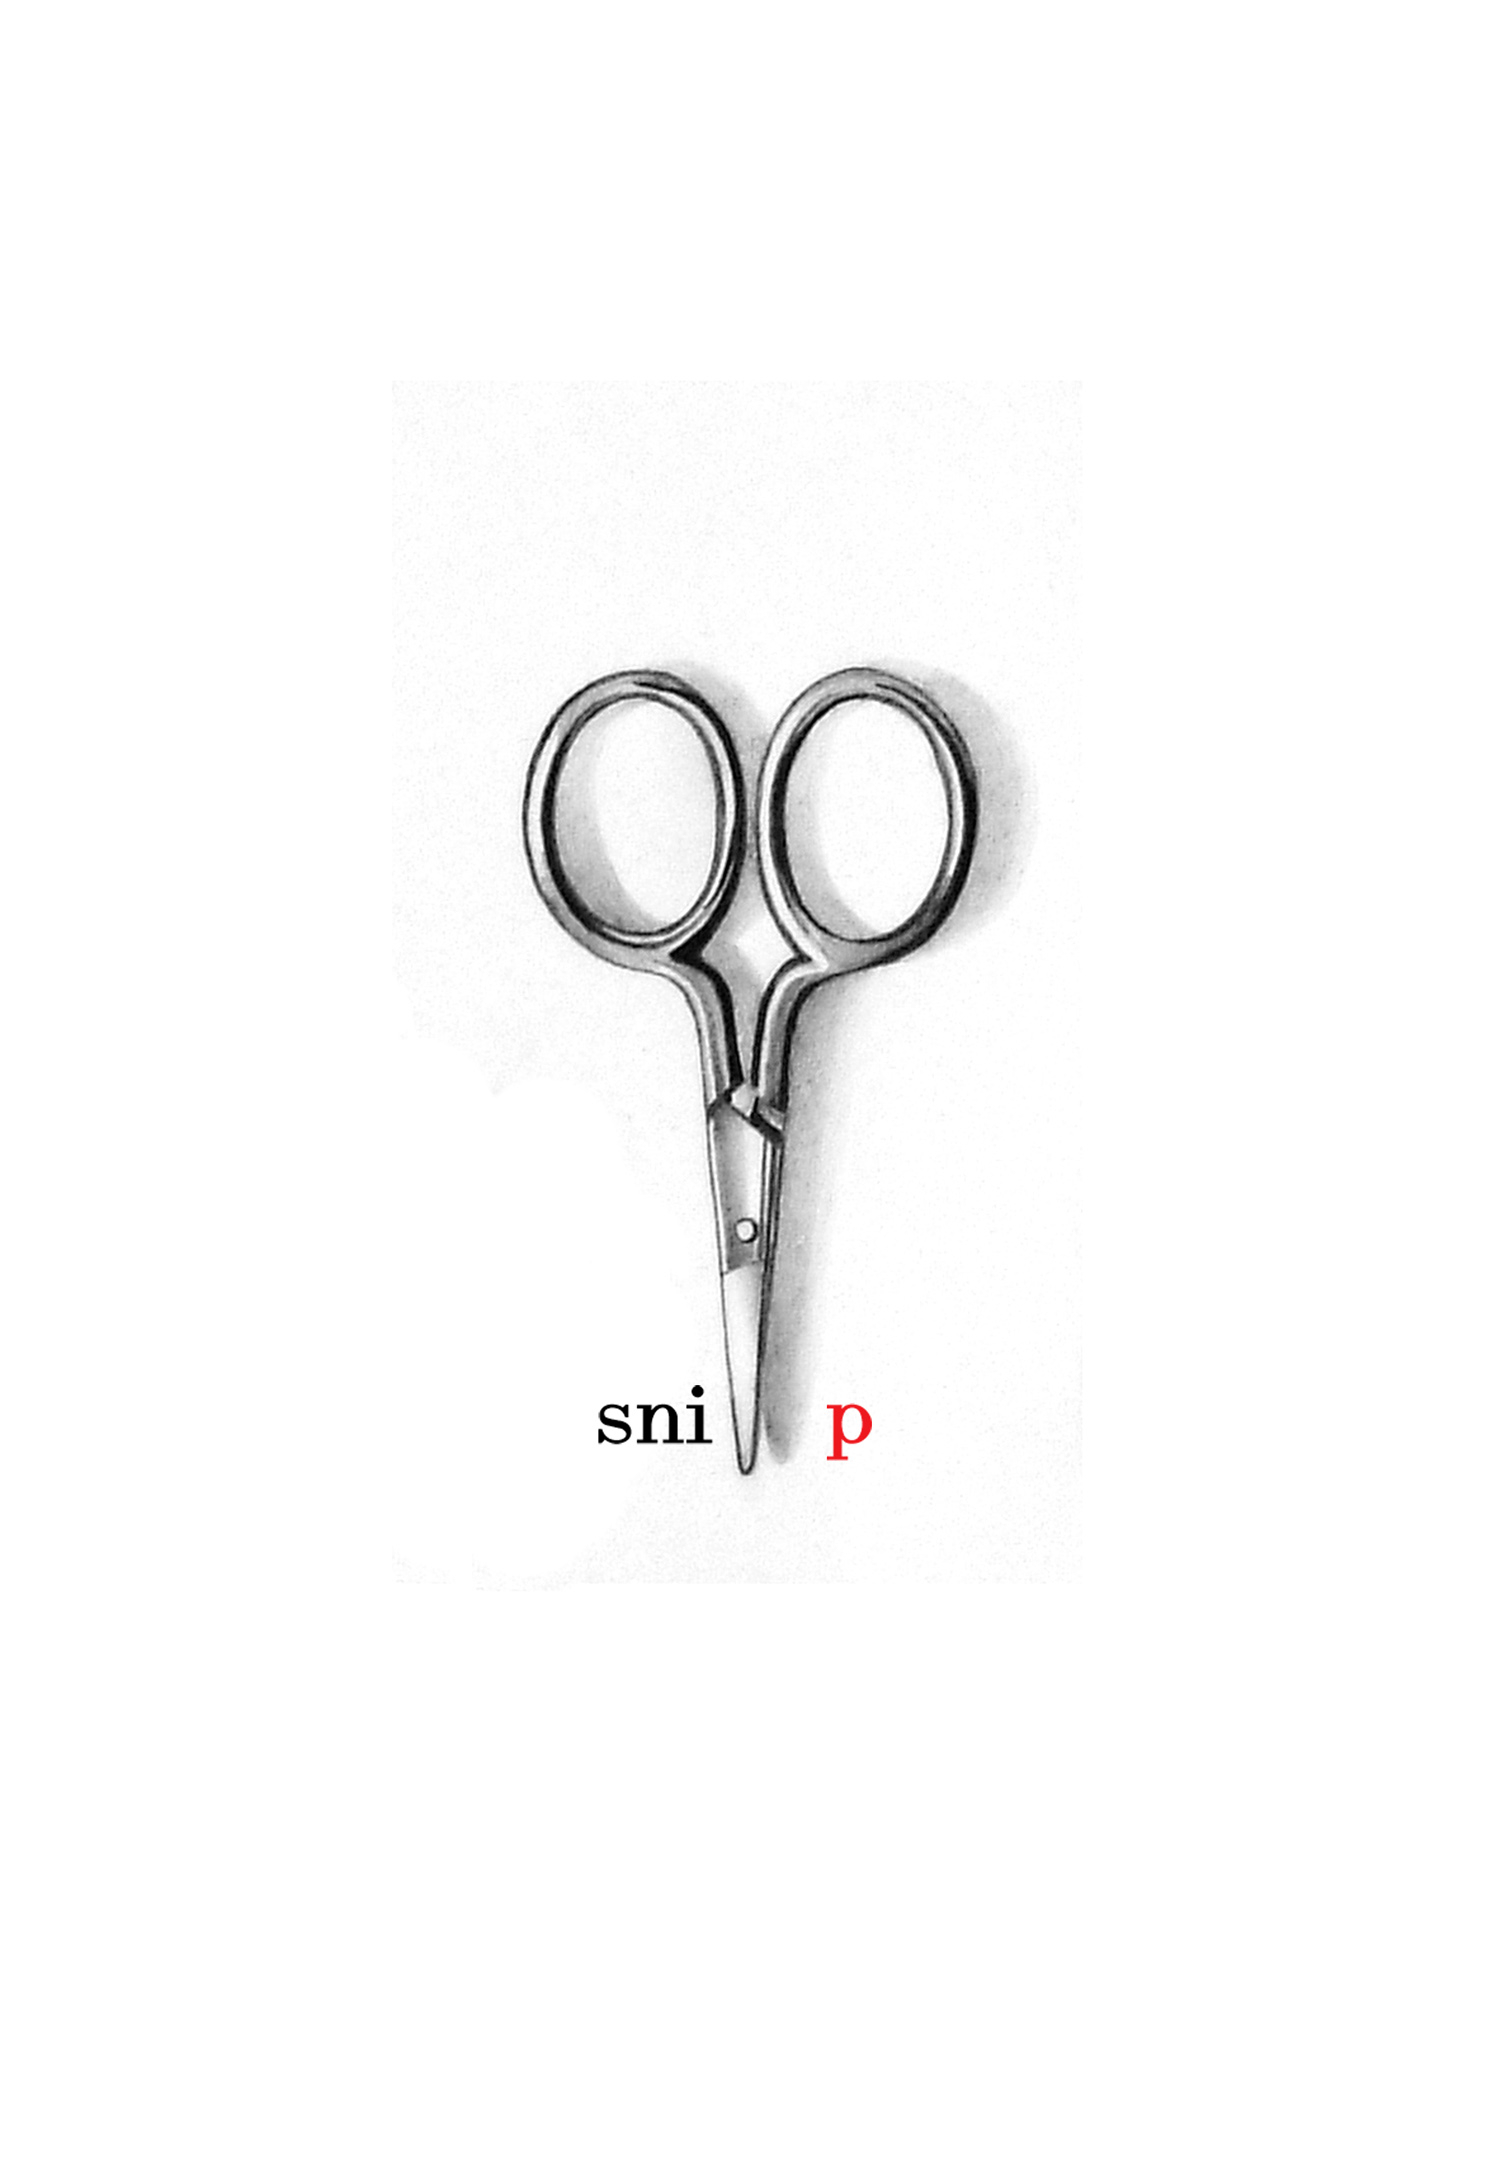 Scissors With Red Snip Lettering